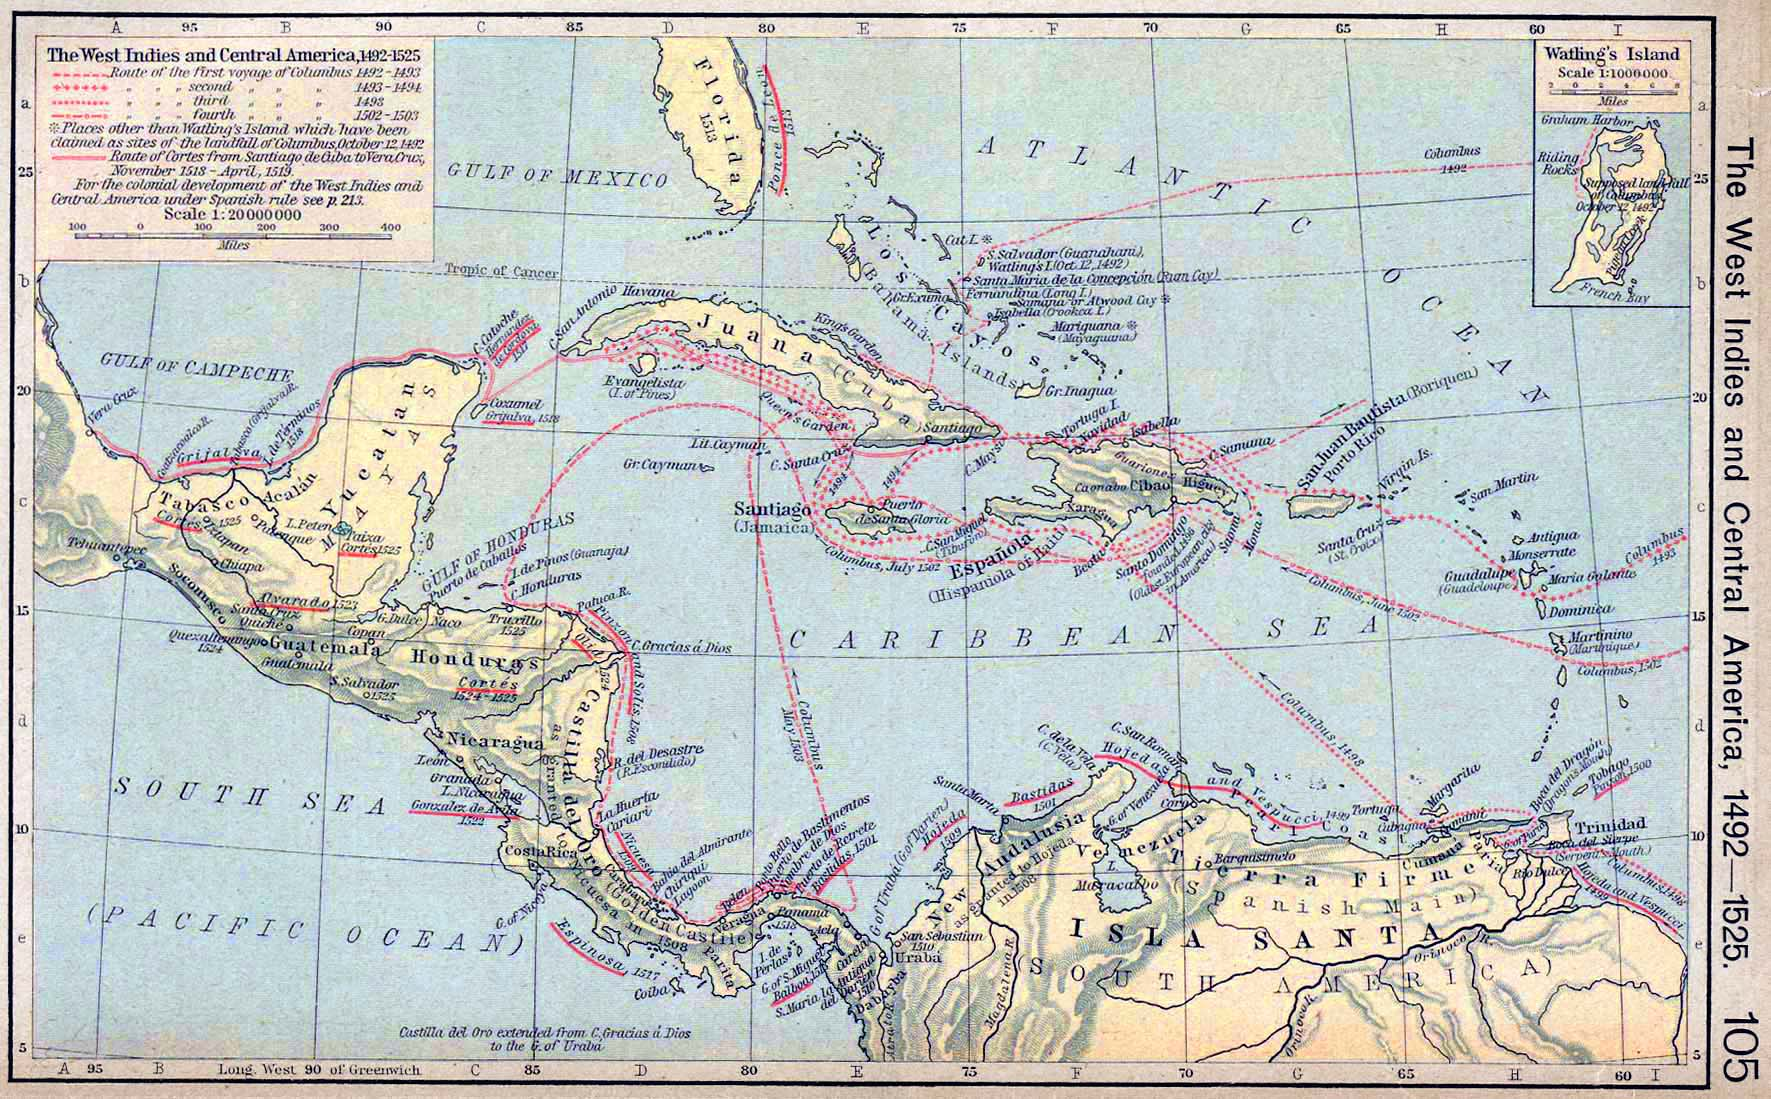 Map Of Central America 1492 1525